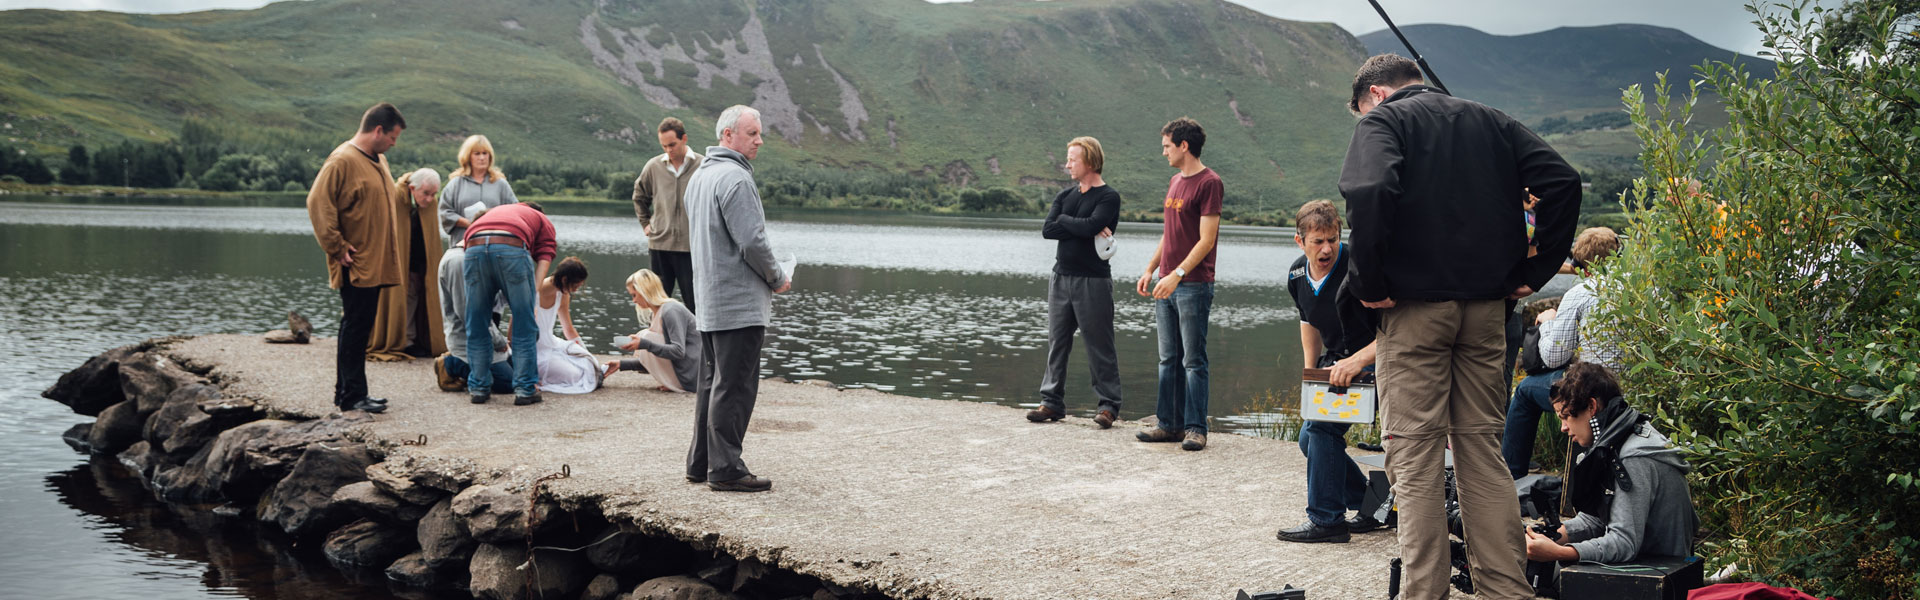 about caragh lake films